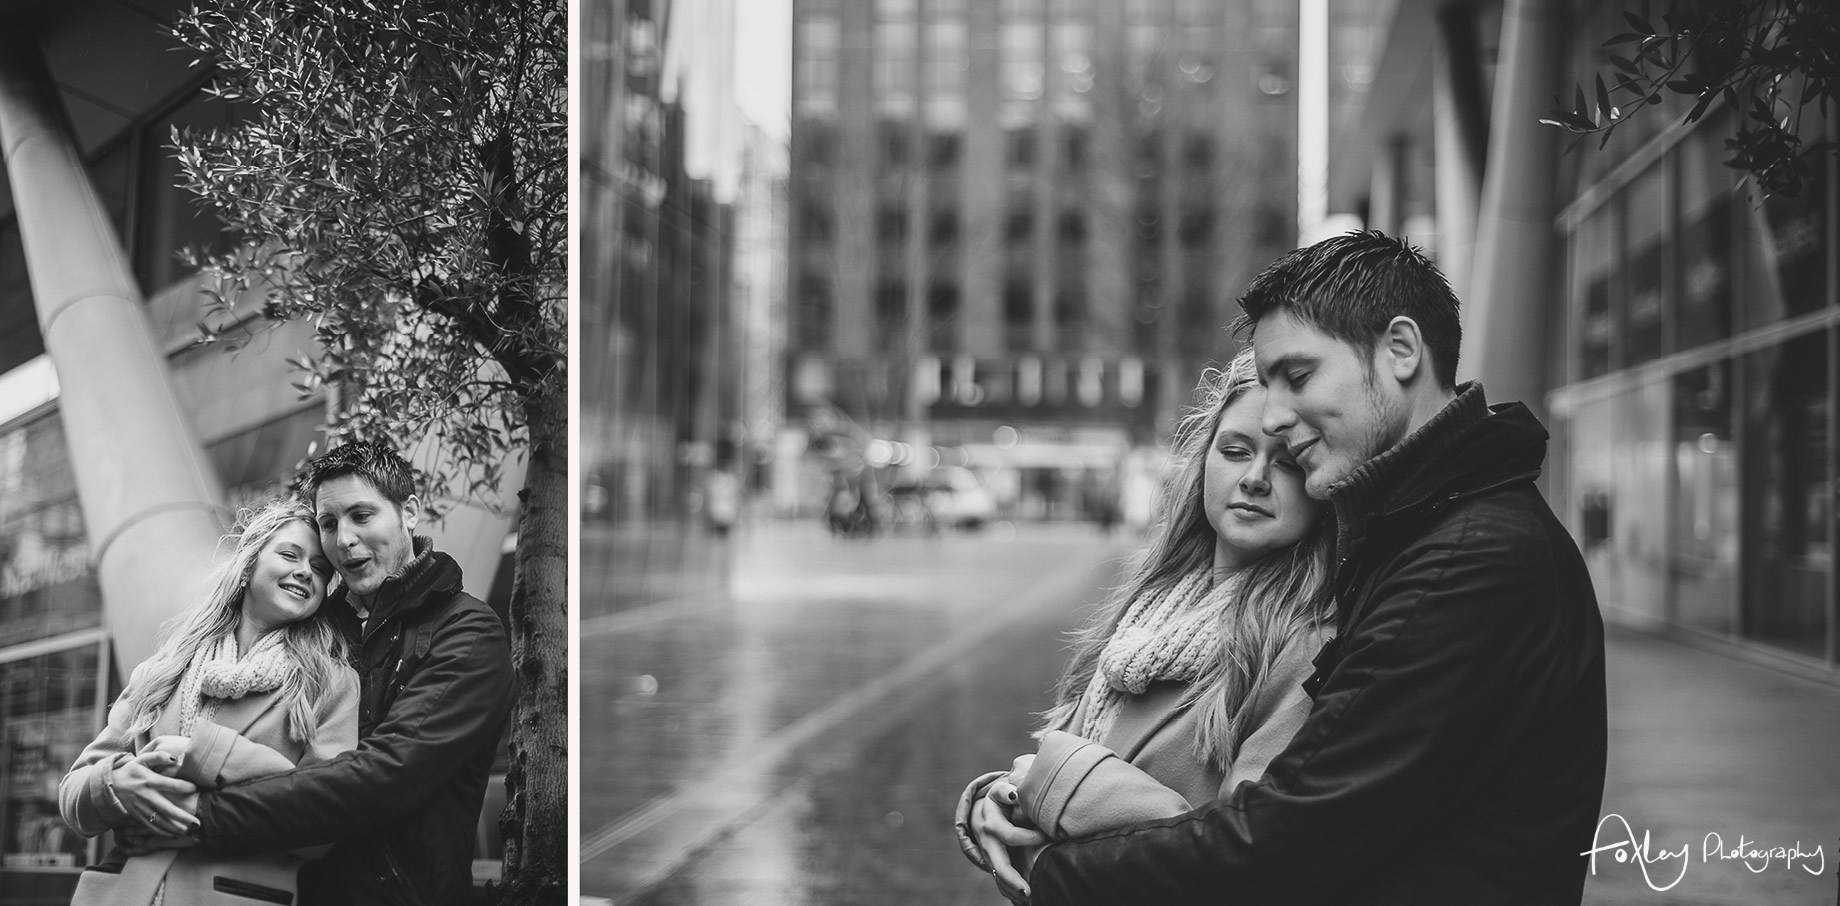 Gemma-and-Lewis-Pre-Wedding-Shoot-Manchester-City-Centre-026